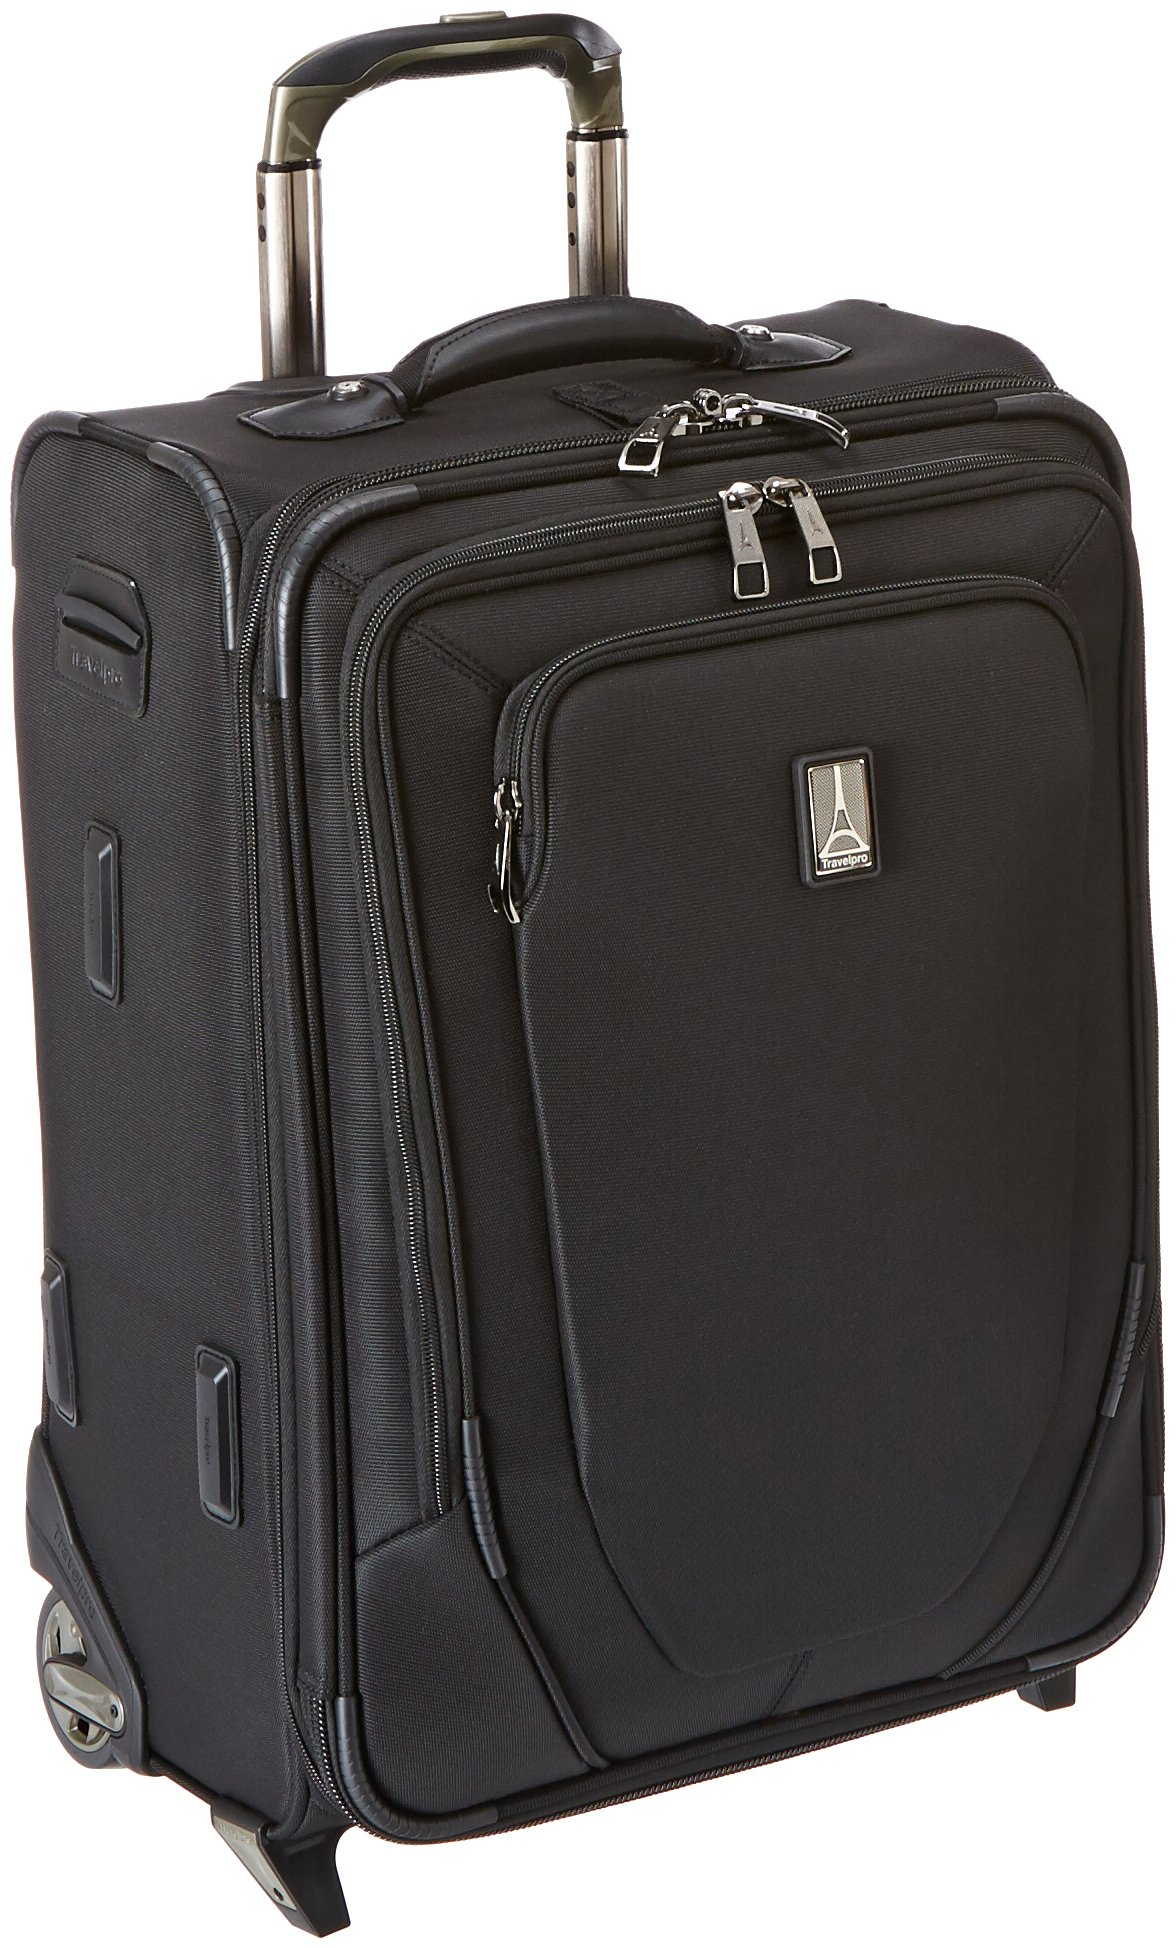 Travelpro Crew 10 20 '' Expandable Business Plus Rollaboard, Balck by Travelpro